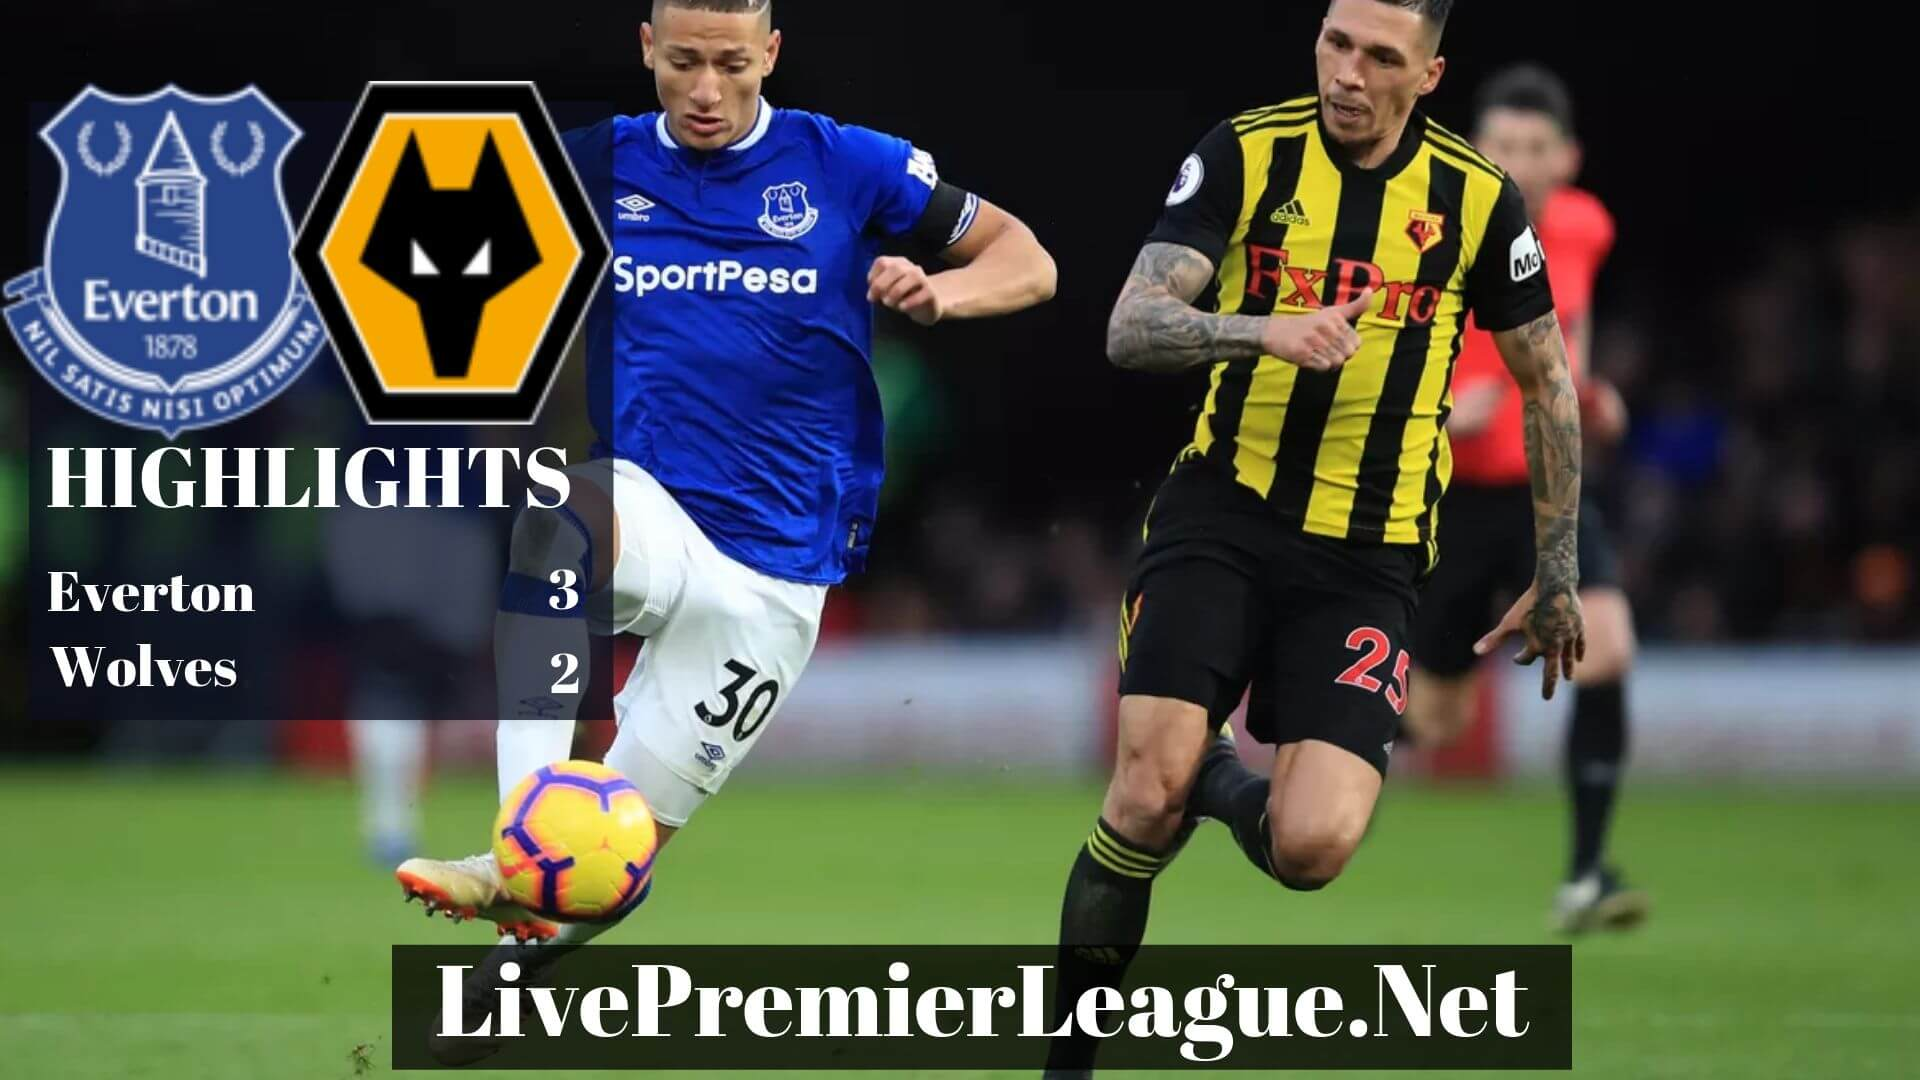 Everton Vs Wolves highlights 2019 Premier League